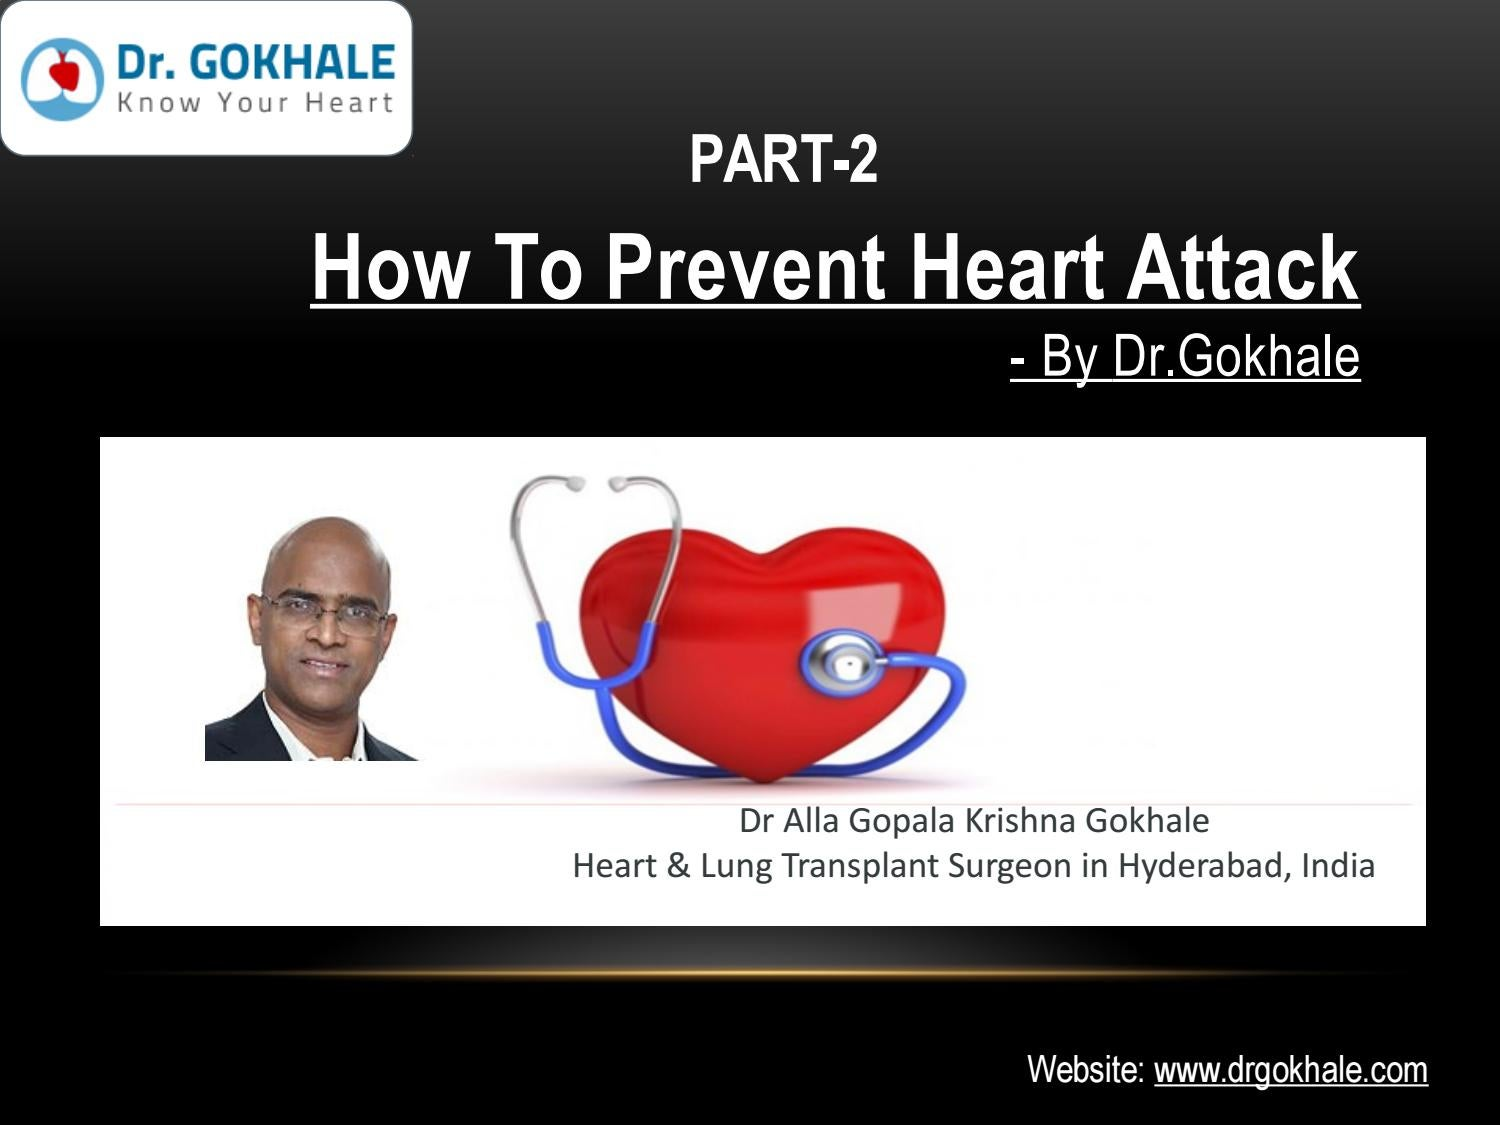 How To Prevent Heart Attack by Dr Gokhale PART-2 by Dr Alla